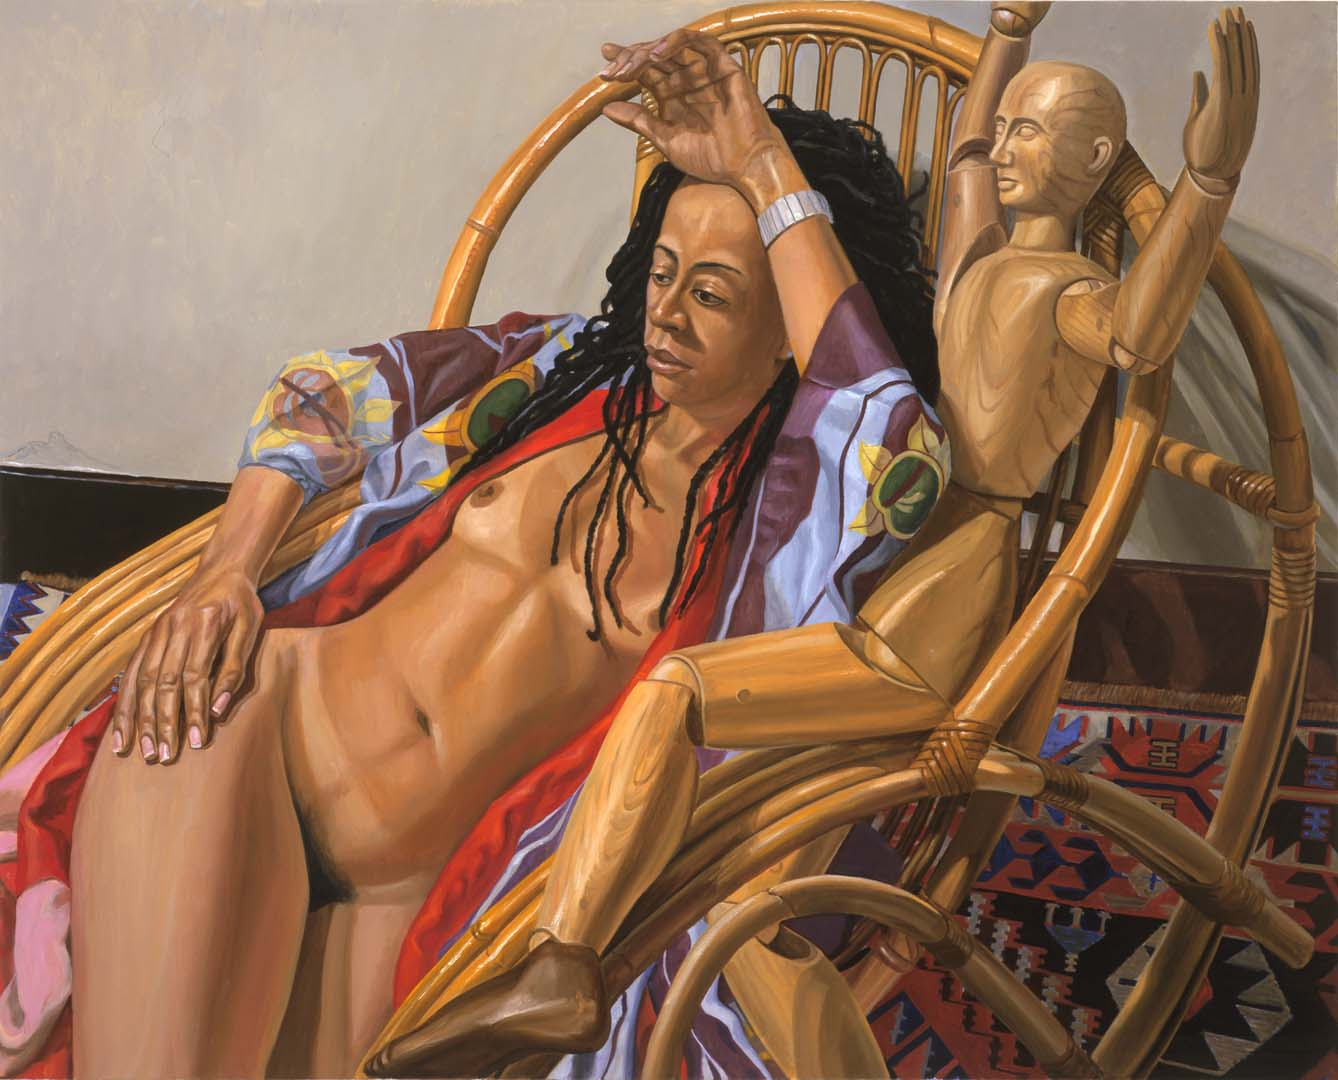 2005 Model on Bamboo Lounge with Artist Mannequin Oil on Canvas 48 x 60